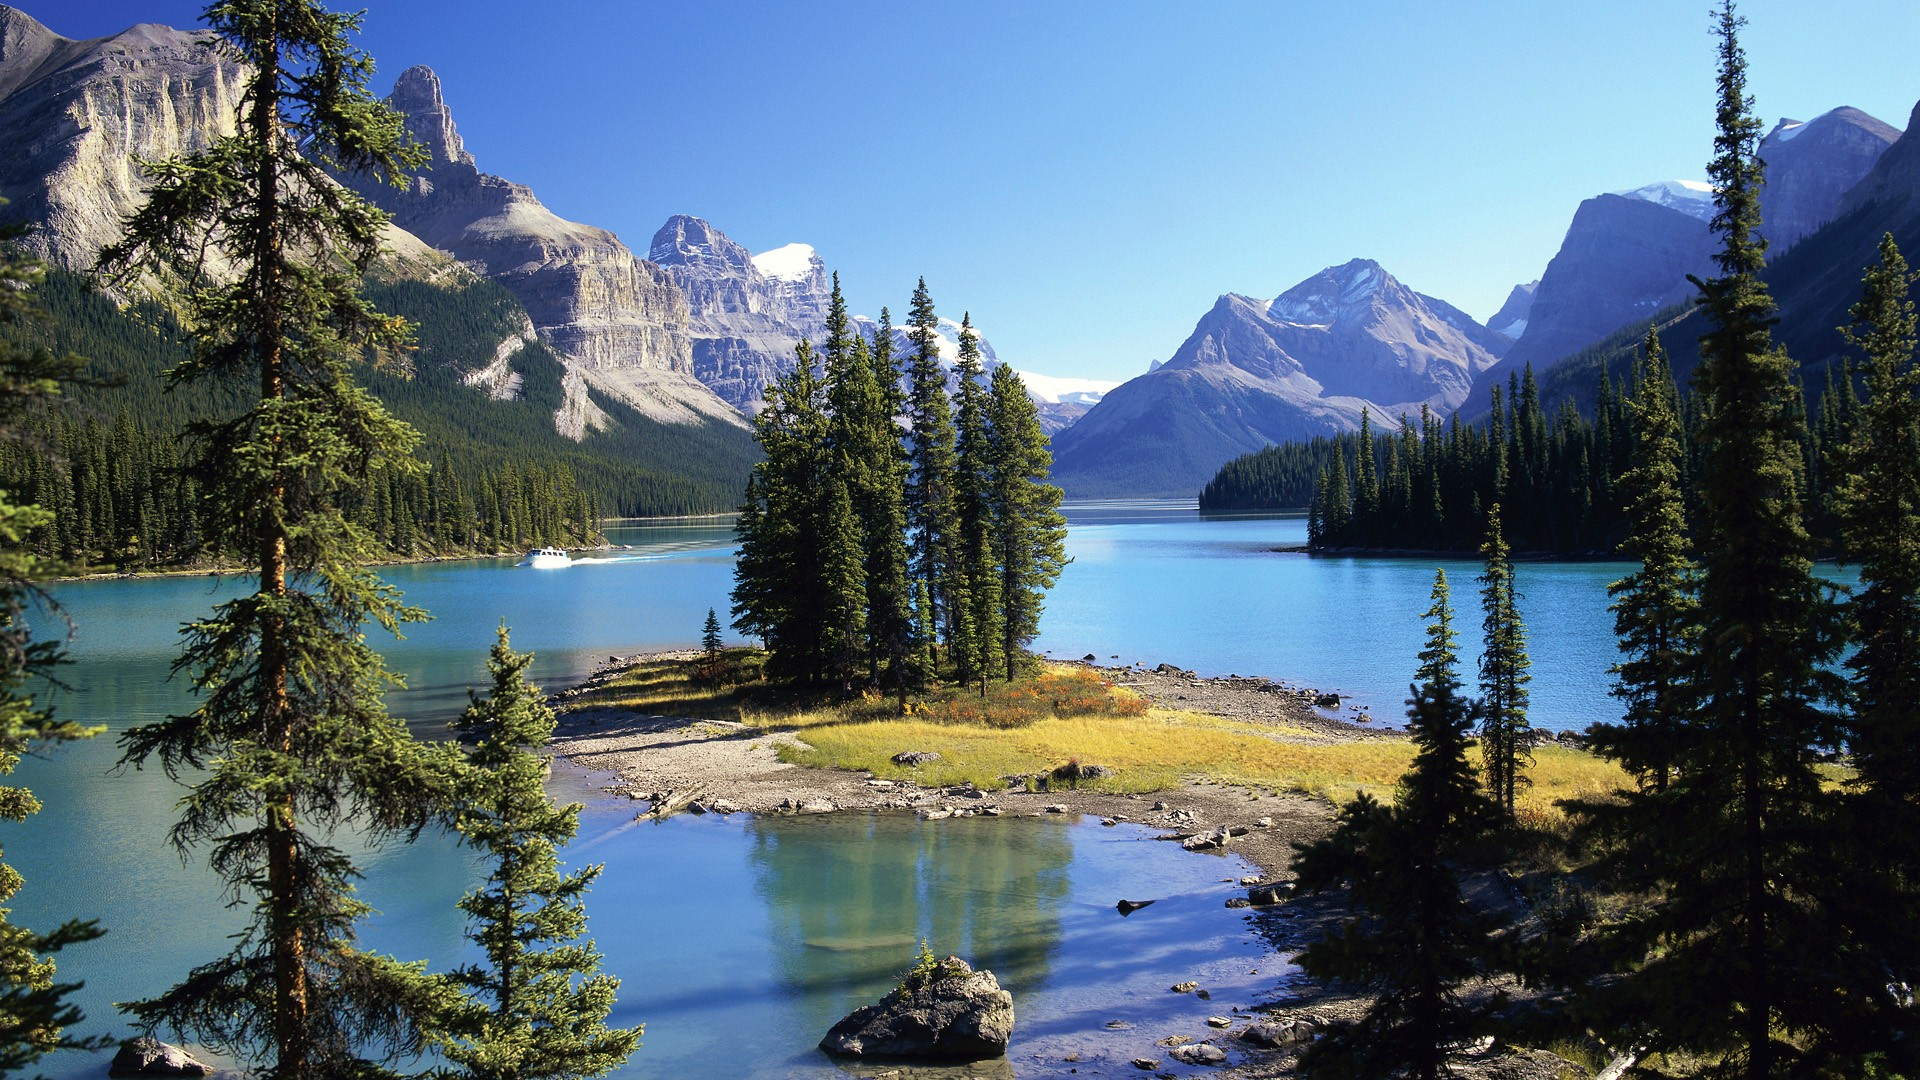 lake louise map google with Maligne Lake on Info niagara likewise Mt Norquay Opening Day as well Maligne Lake likewise El Paso Texas Location On Map furthermore 676645.